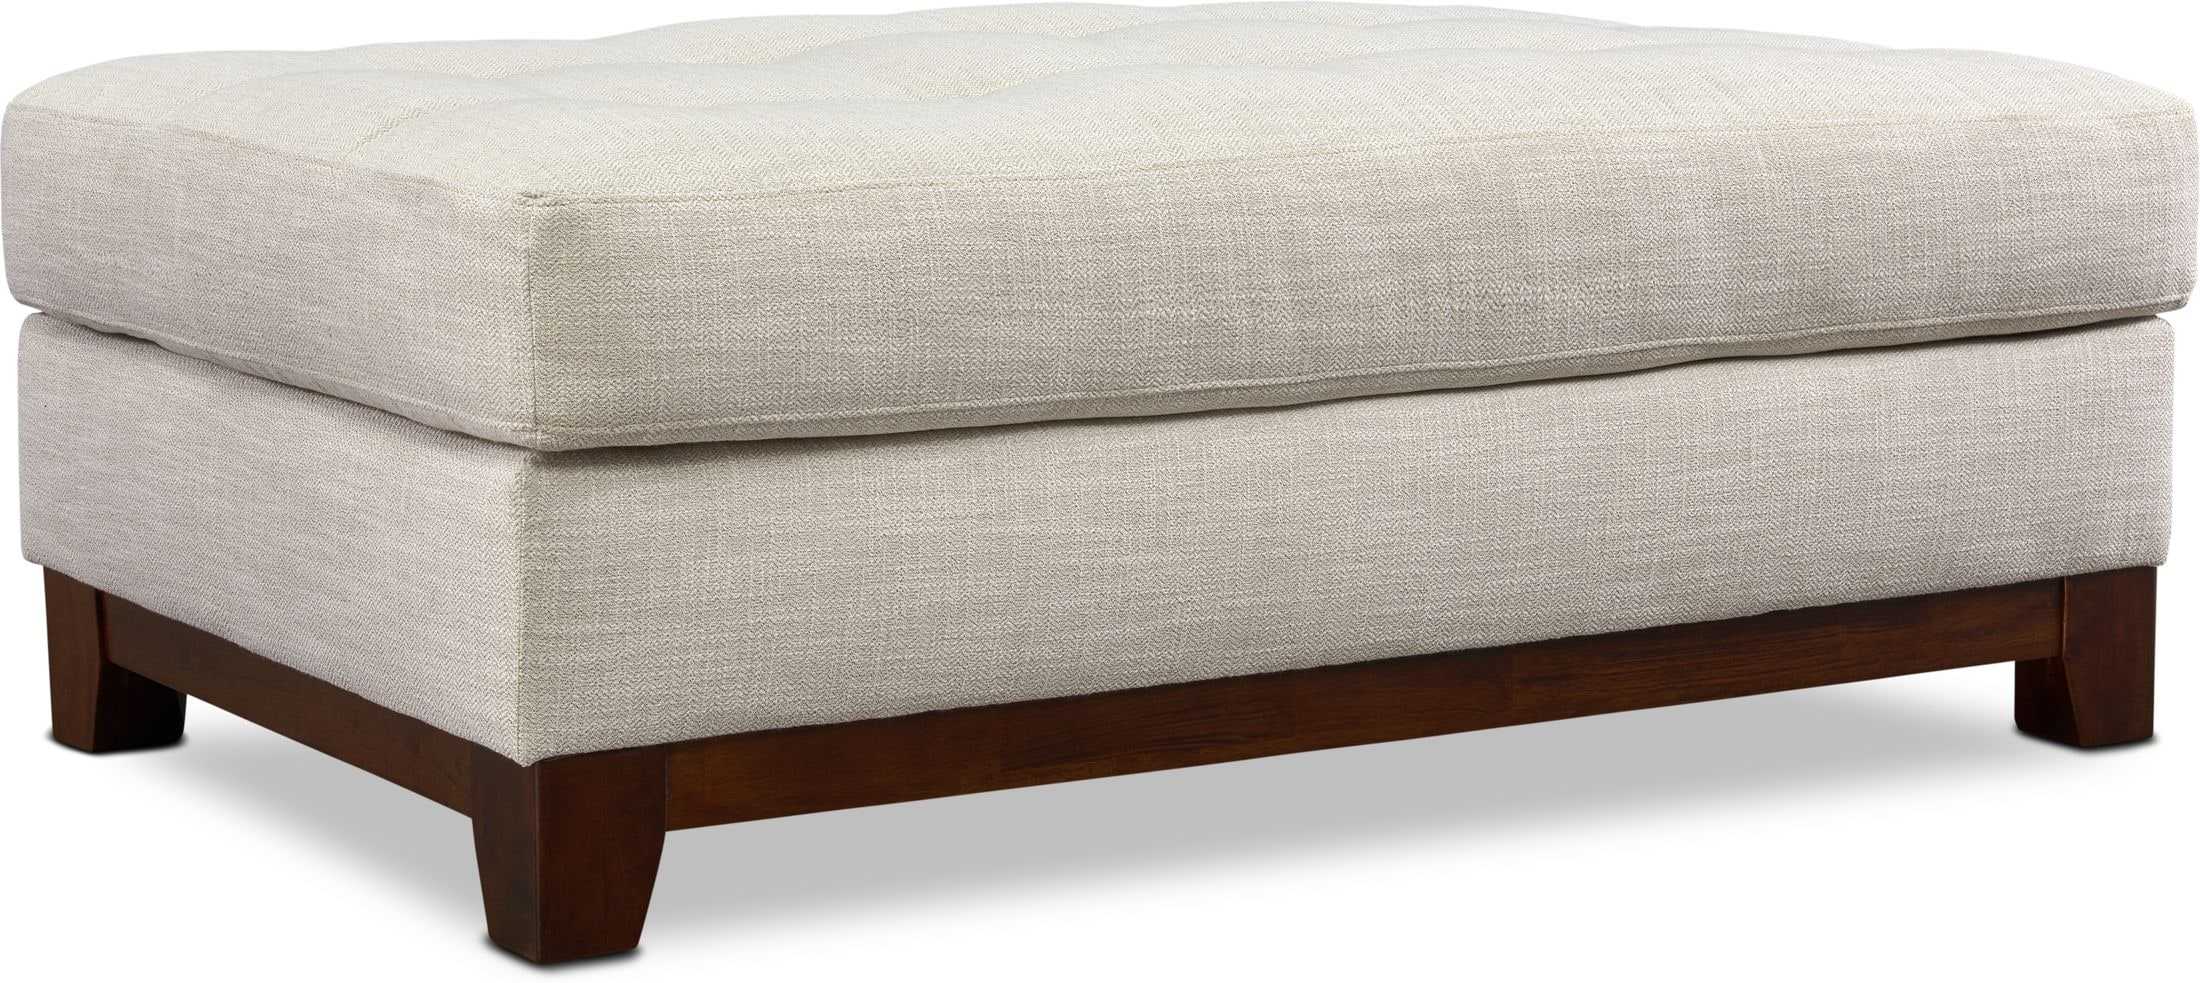 Living Room Furniture - Anderson Ottoman